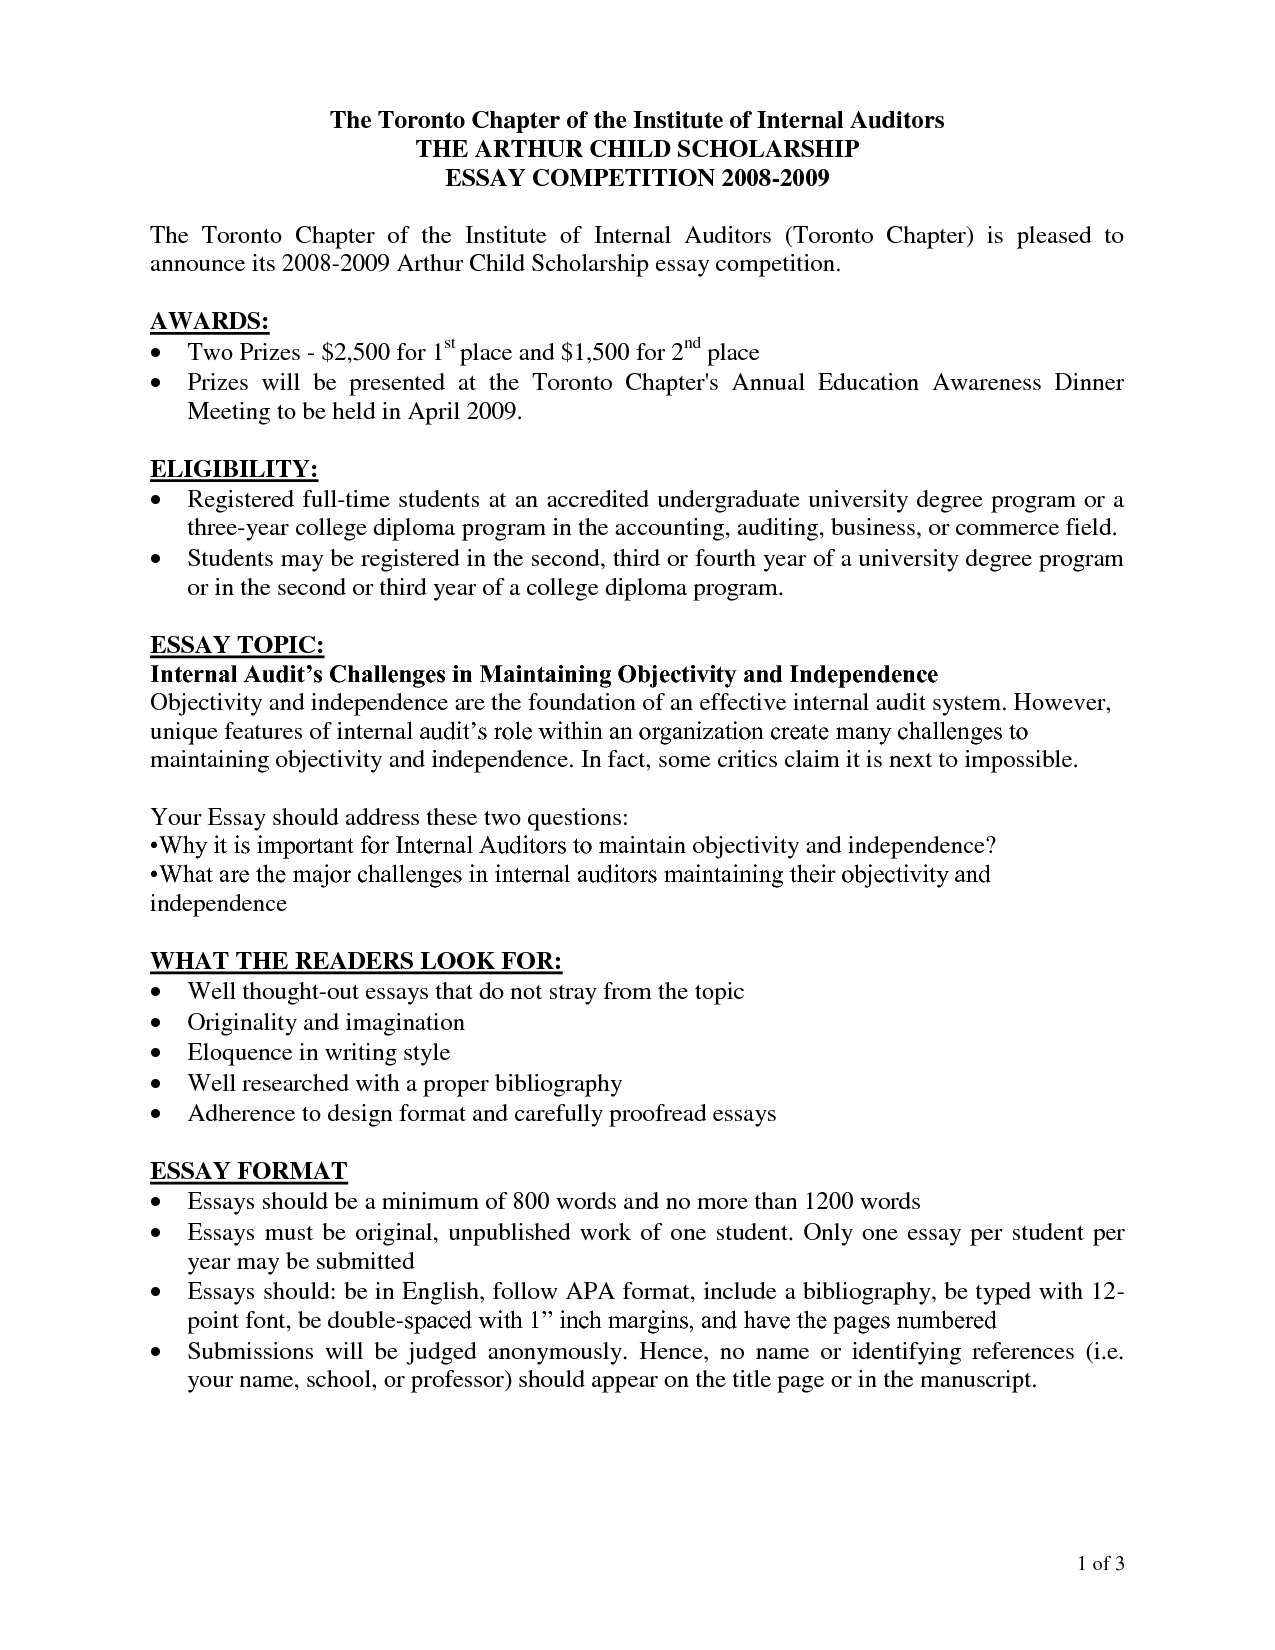 Format Of A Scholarship Essay Cover Letter What Is The Format For intended for Scholarship Essay Format 19996